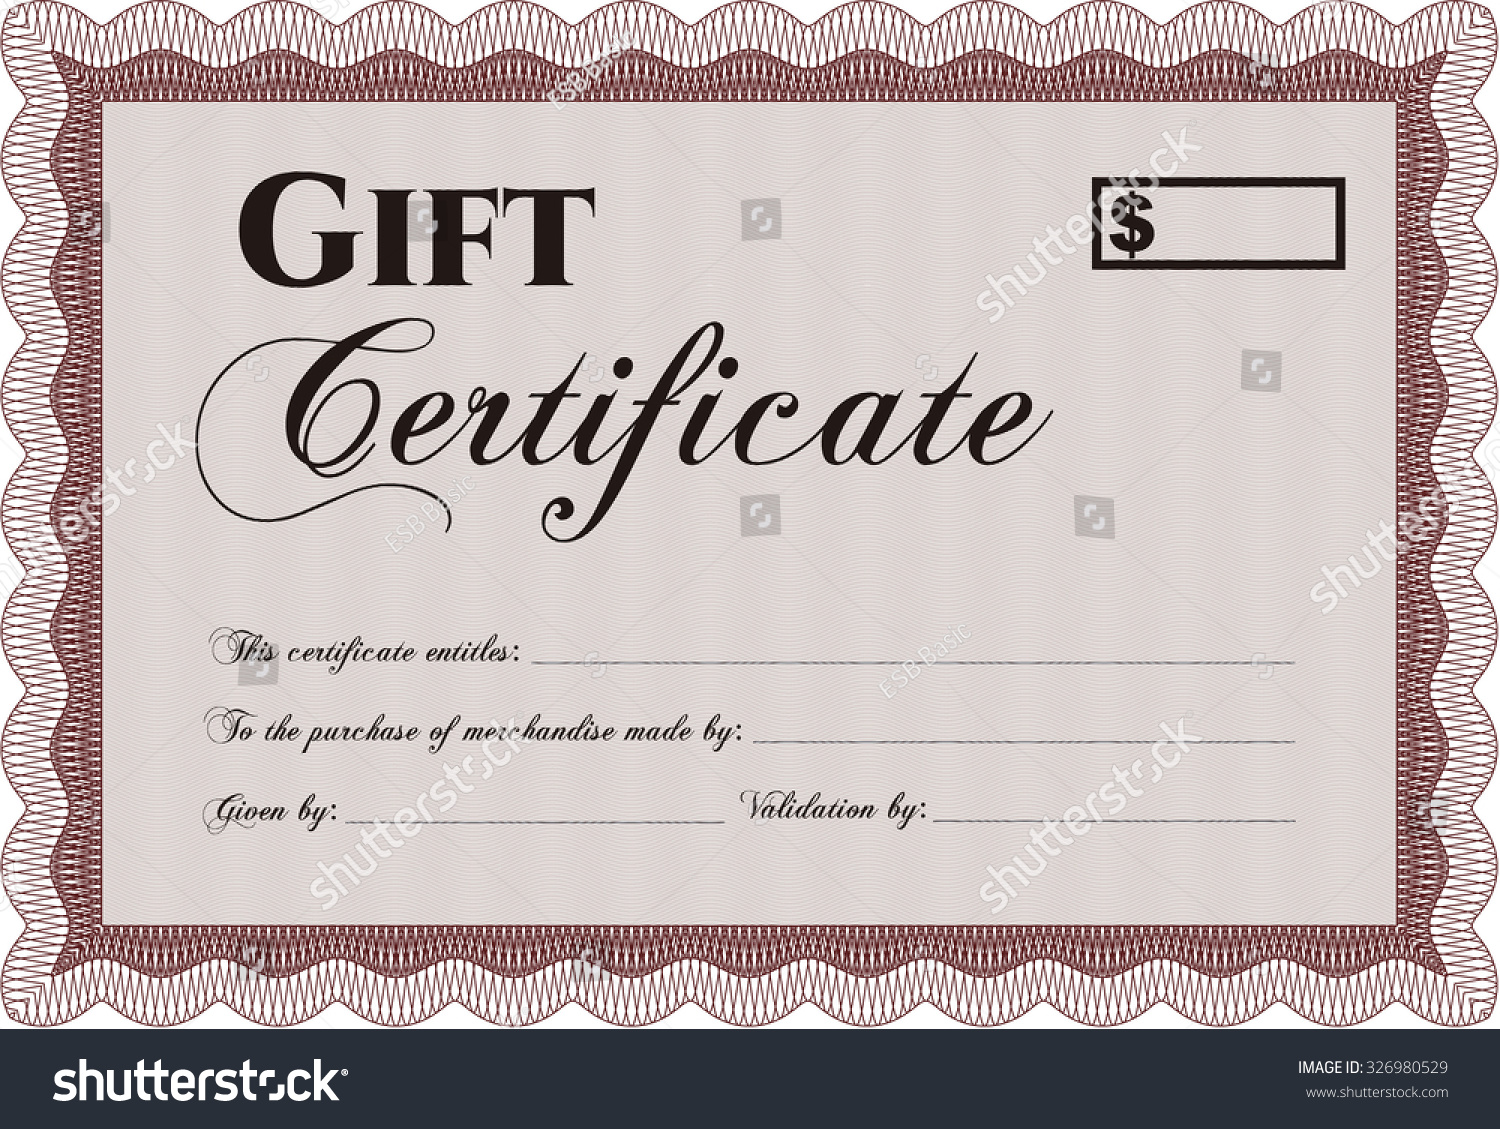 Gift certificate template easy to print customizable for This entitles the bearer to template certificate